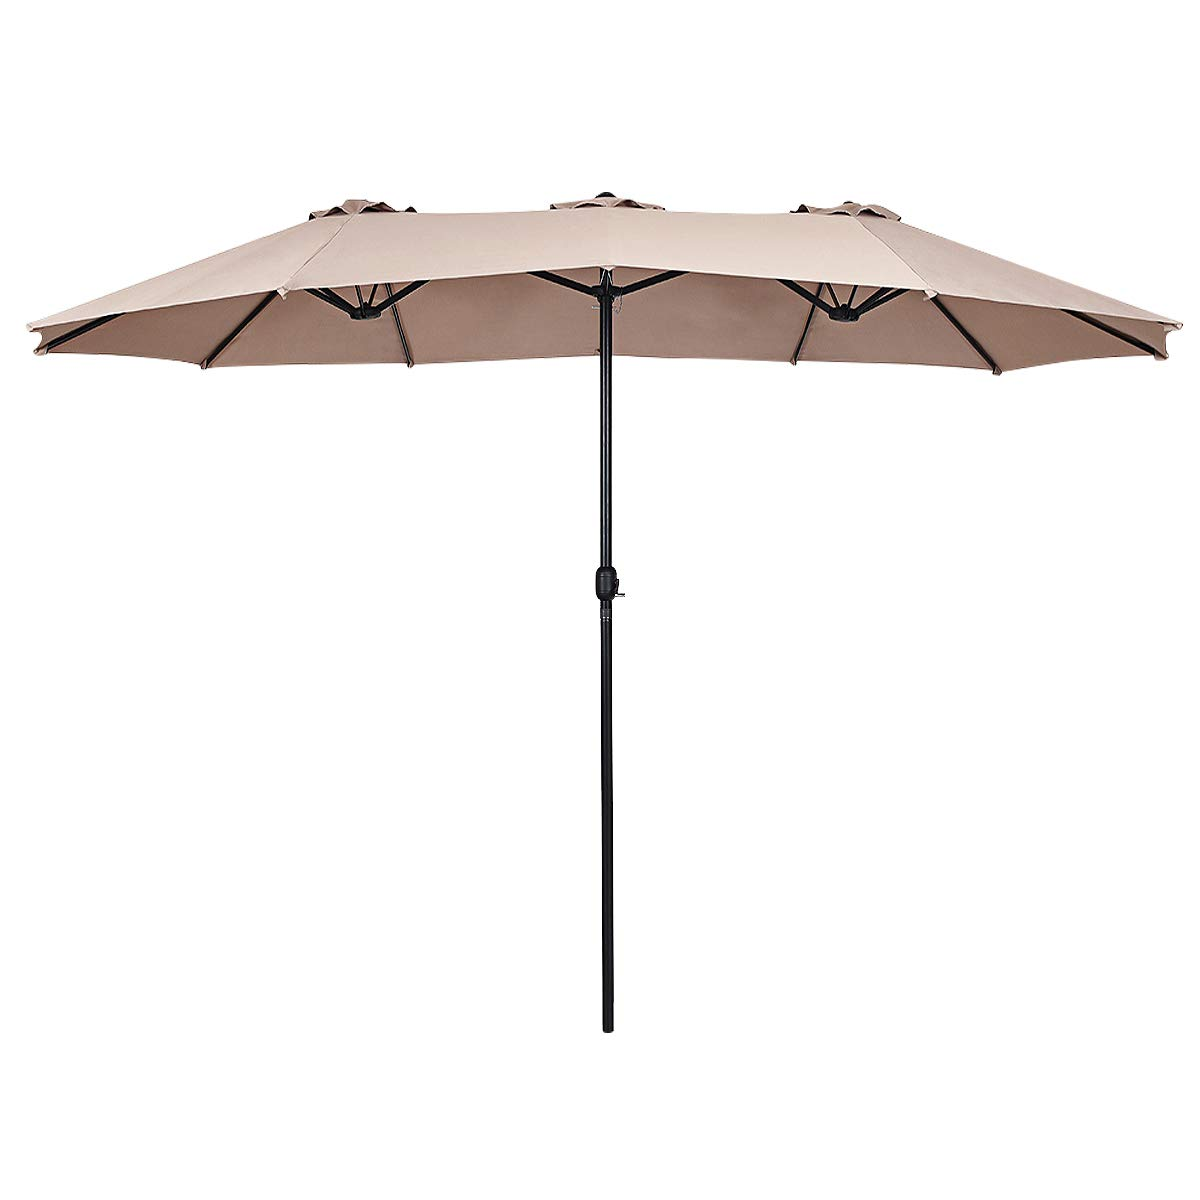 Tangkula 15 Ft Patio Umbrella Double-Sided Outdoor Market Table Umbrella with Crank Beige